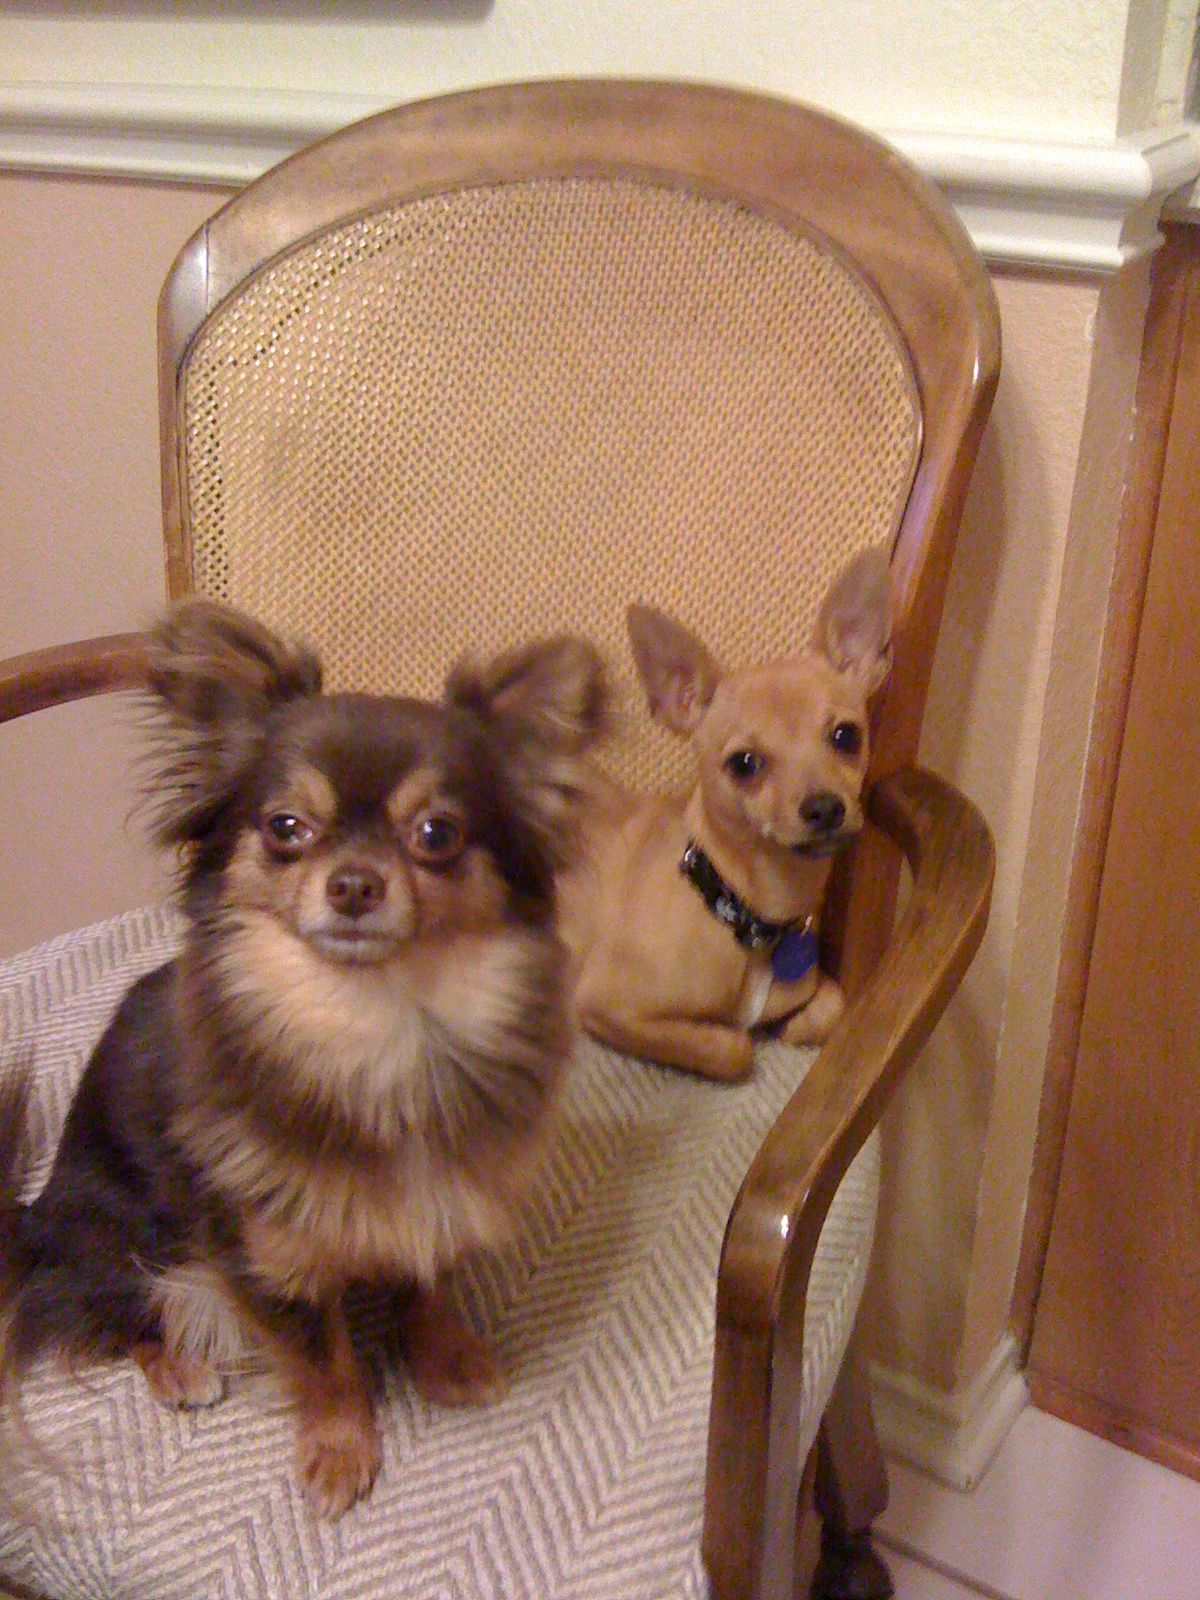 Boo with his homey, Yoda. Pet sitting business, Doggy